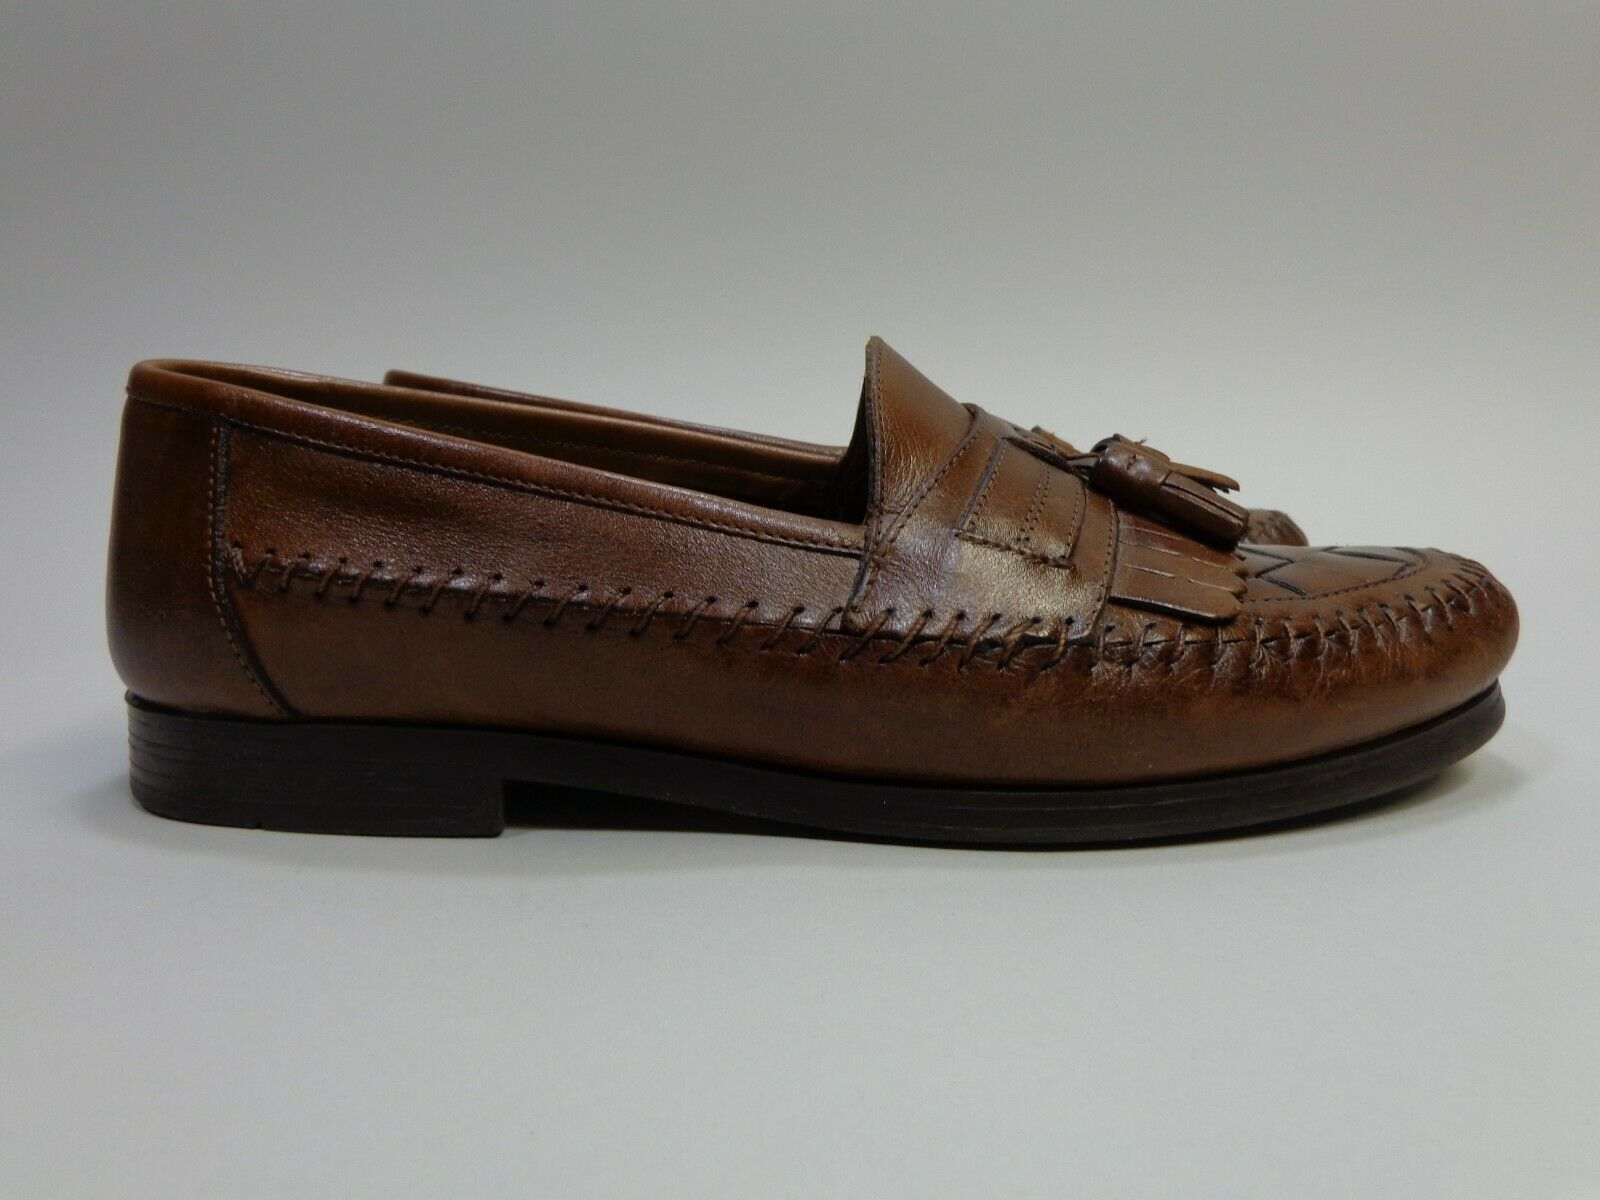 Giorgio Brutini Woven Tassel Kiltie Loafers Brown Leather Mens Size 10 M